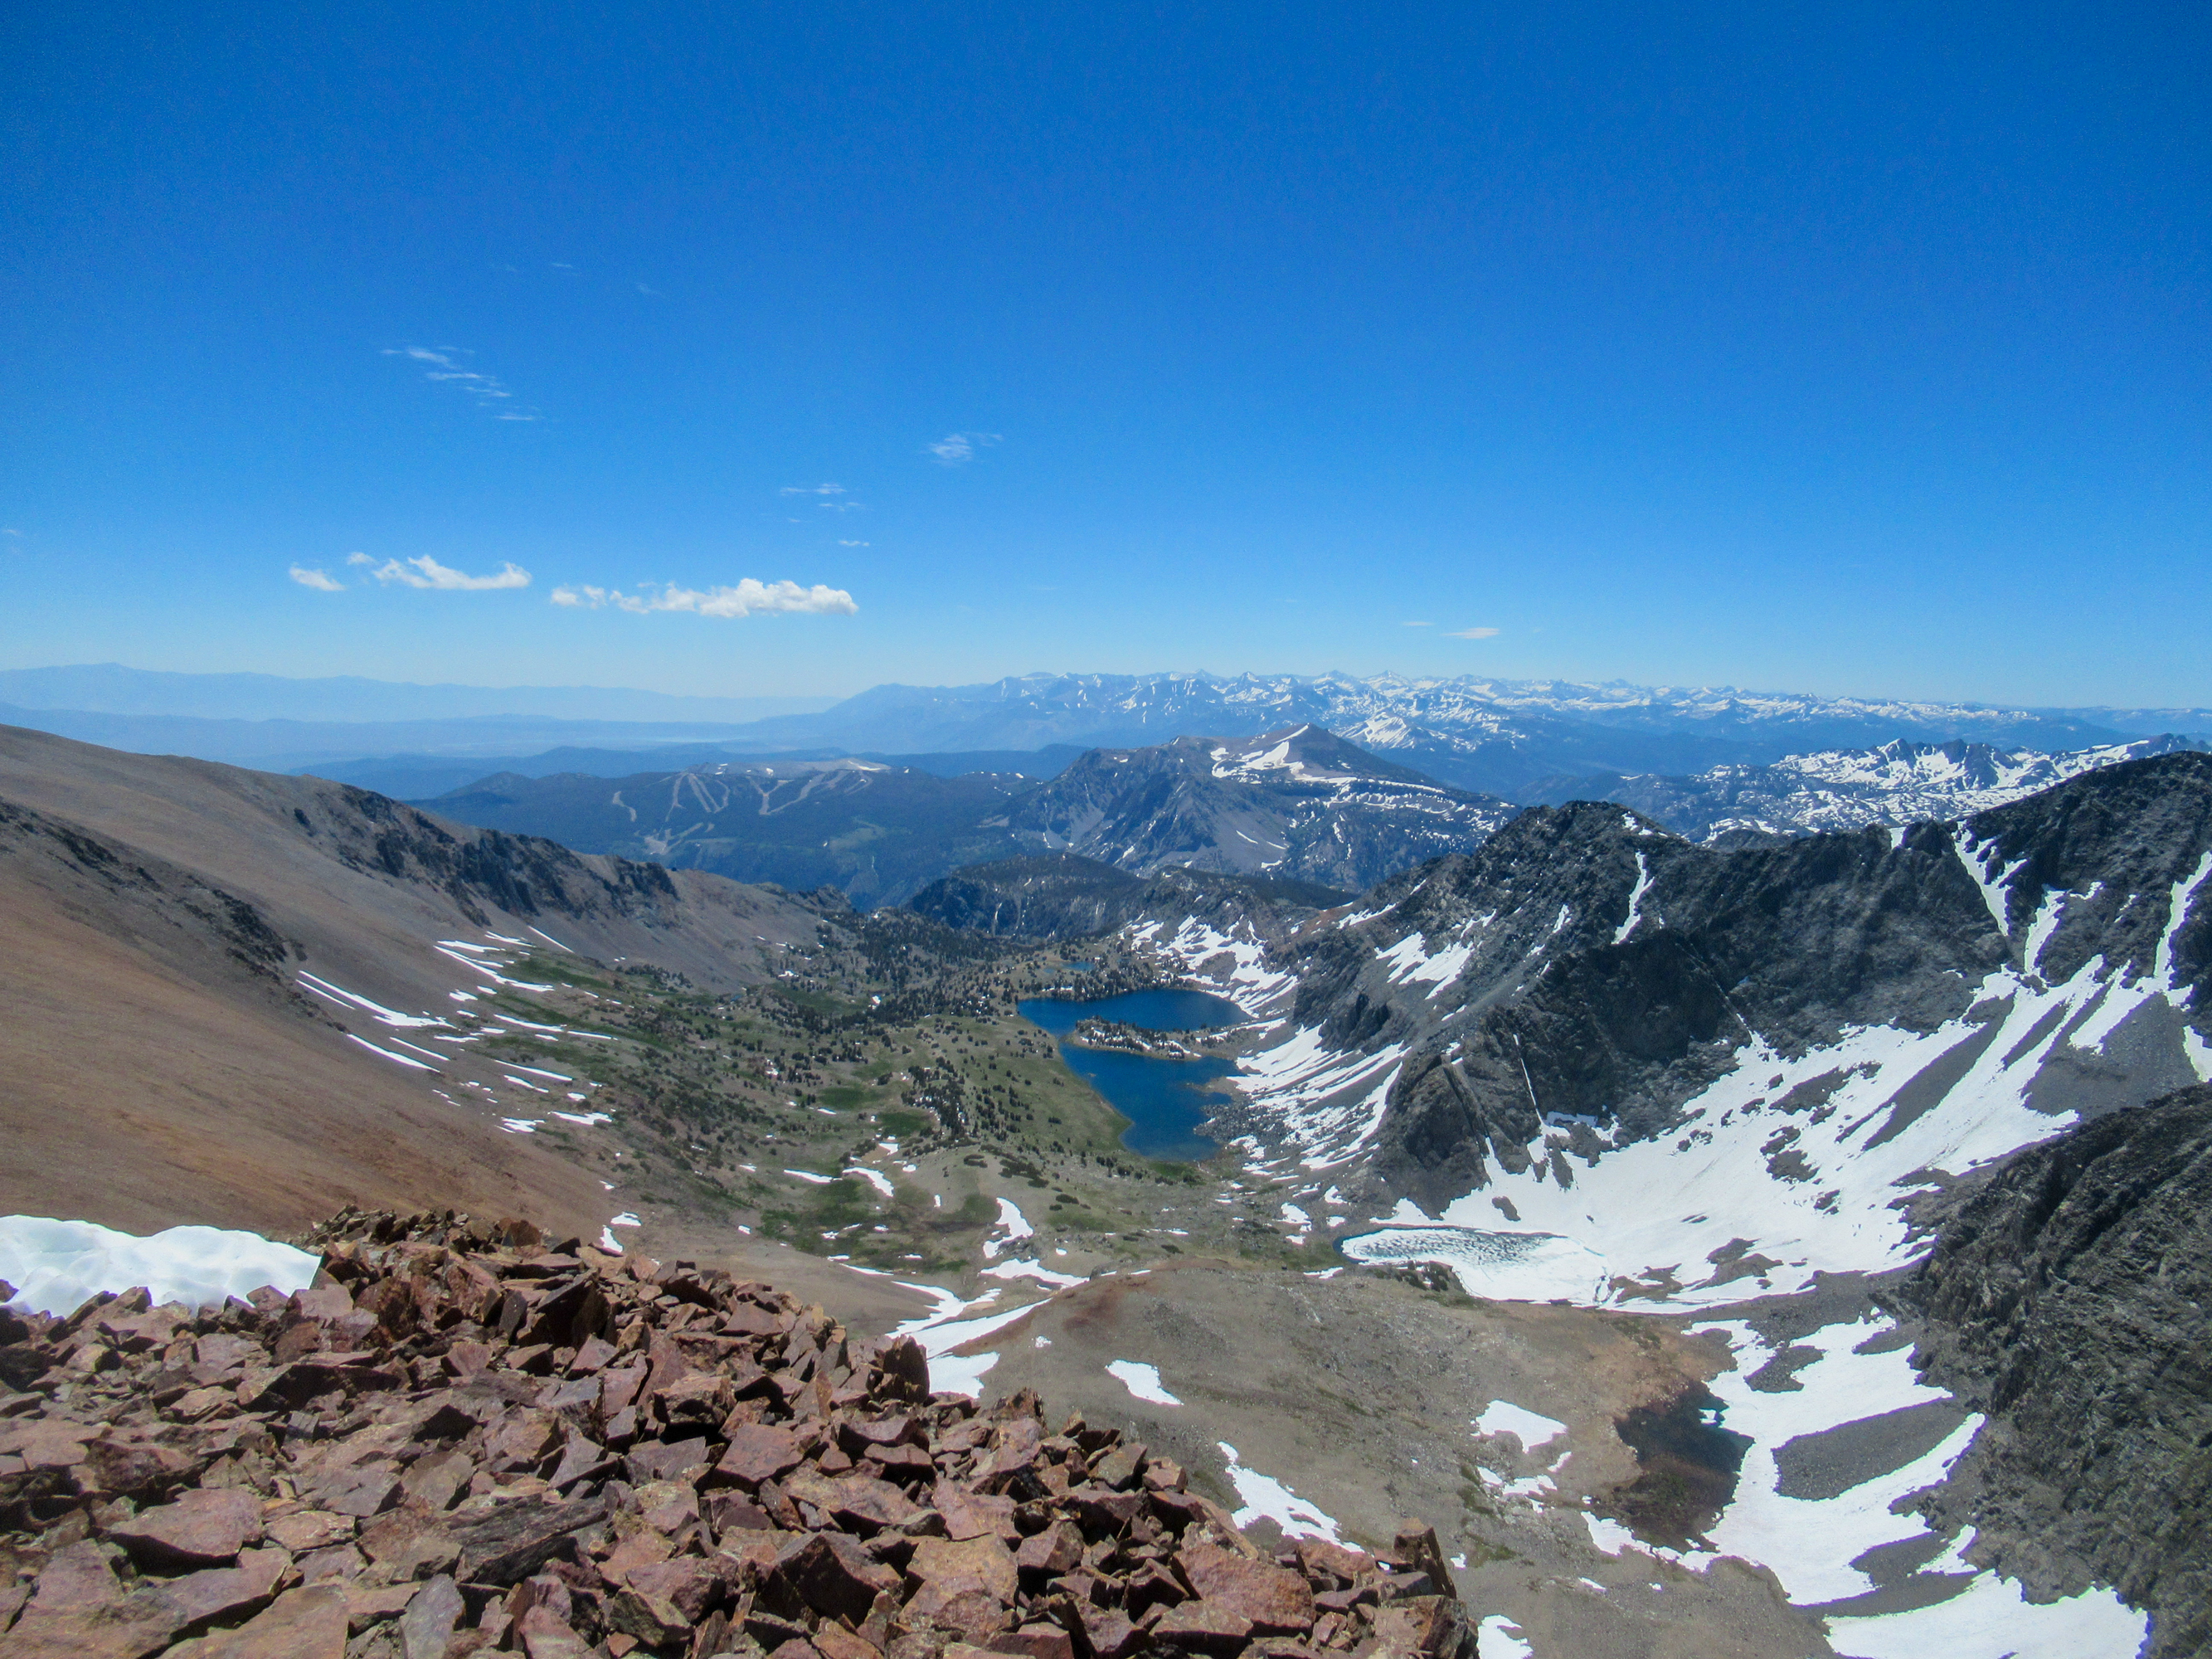 Views of Algers Lake and June Lake from Koip Peak.